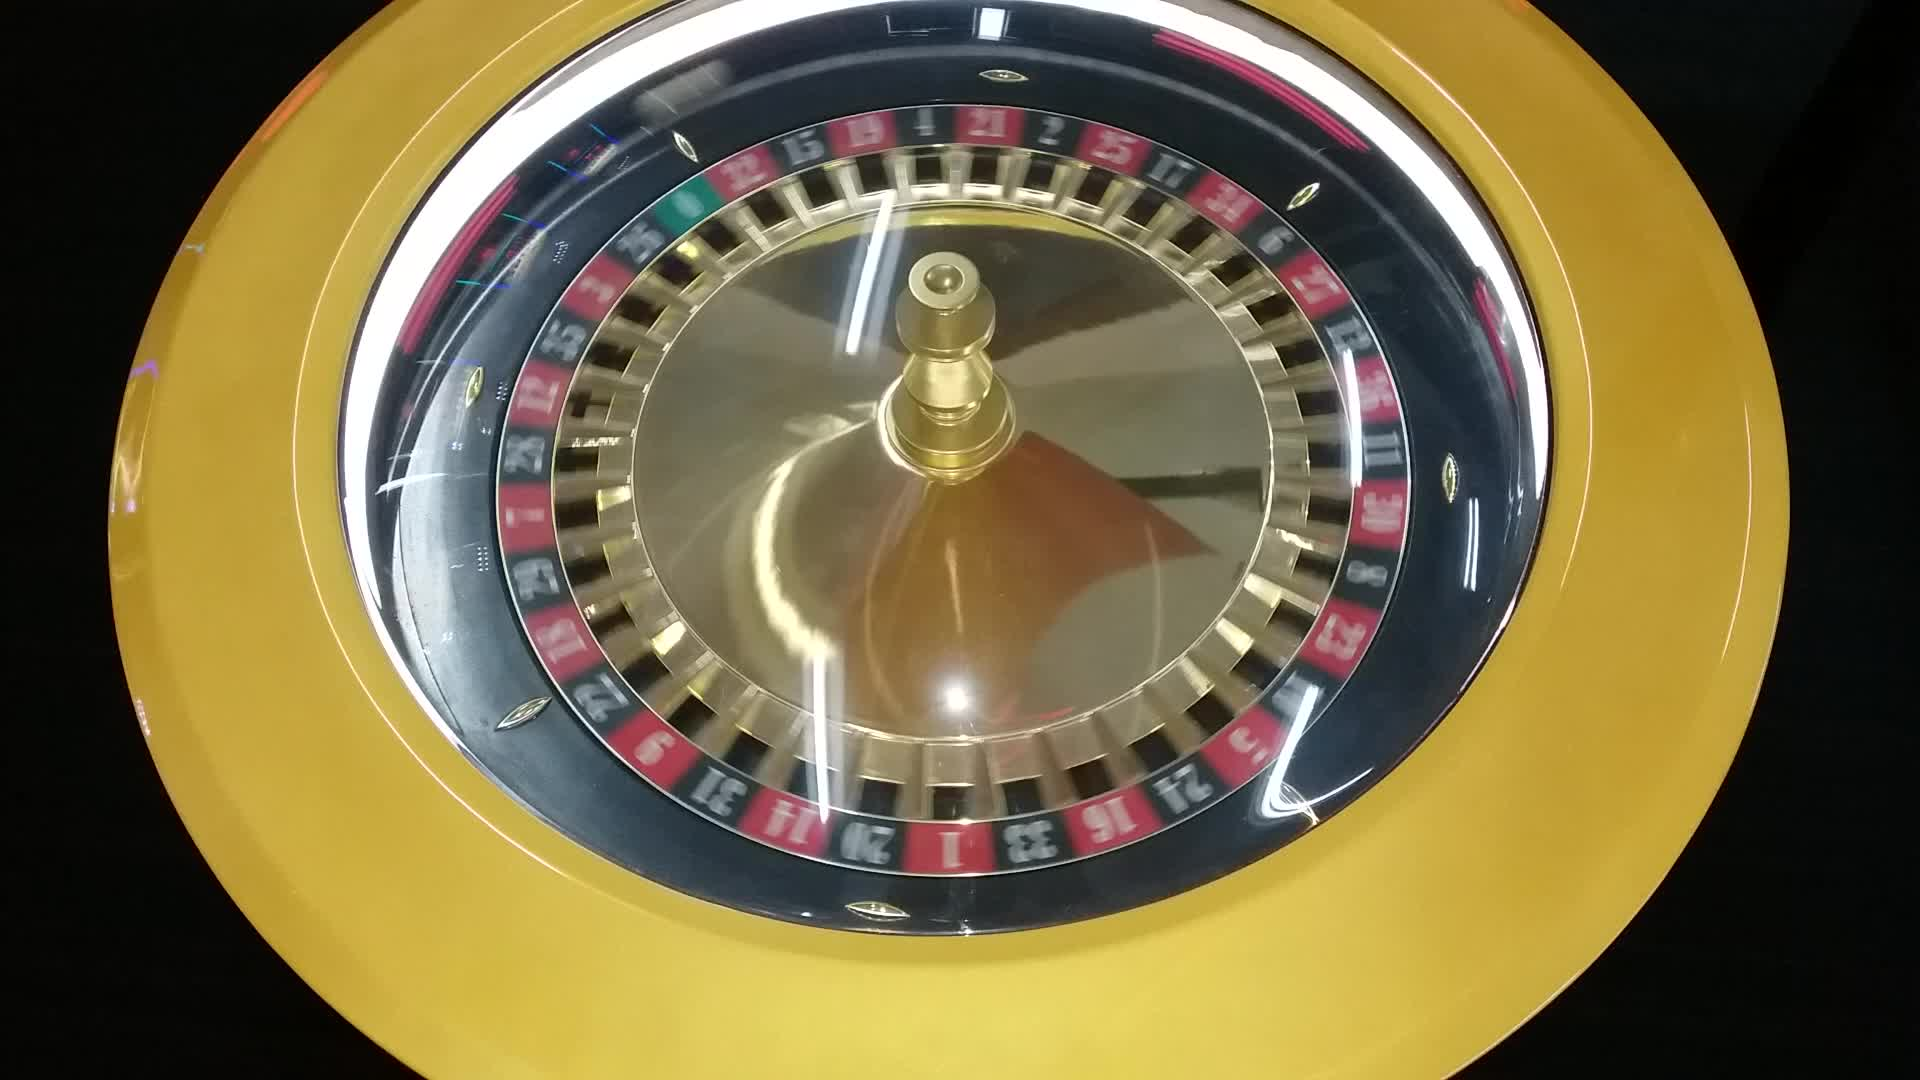 Luxe casino apparatuur 8 spelers casino roulette wiel video game machine prijs